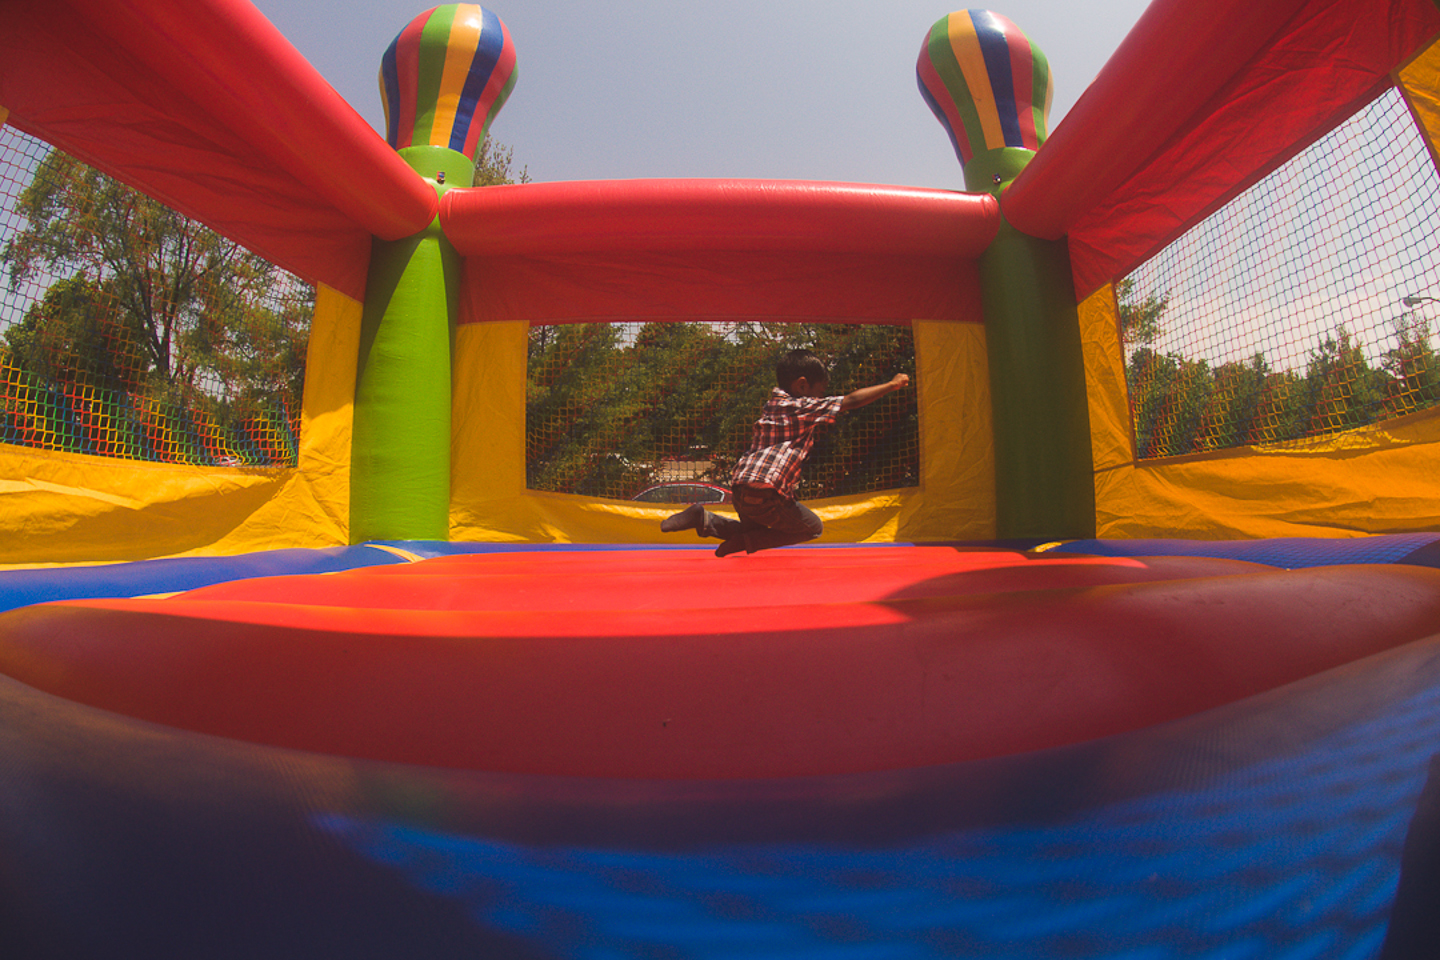 mithun-first-birthday-party-event-photography-long-island-ny-first-birthday-0061.jpg